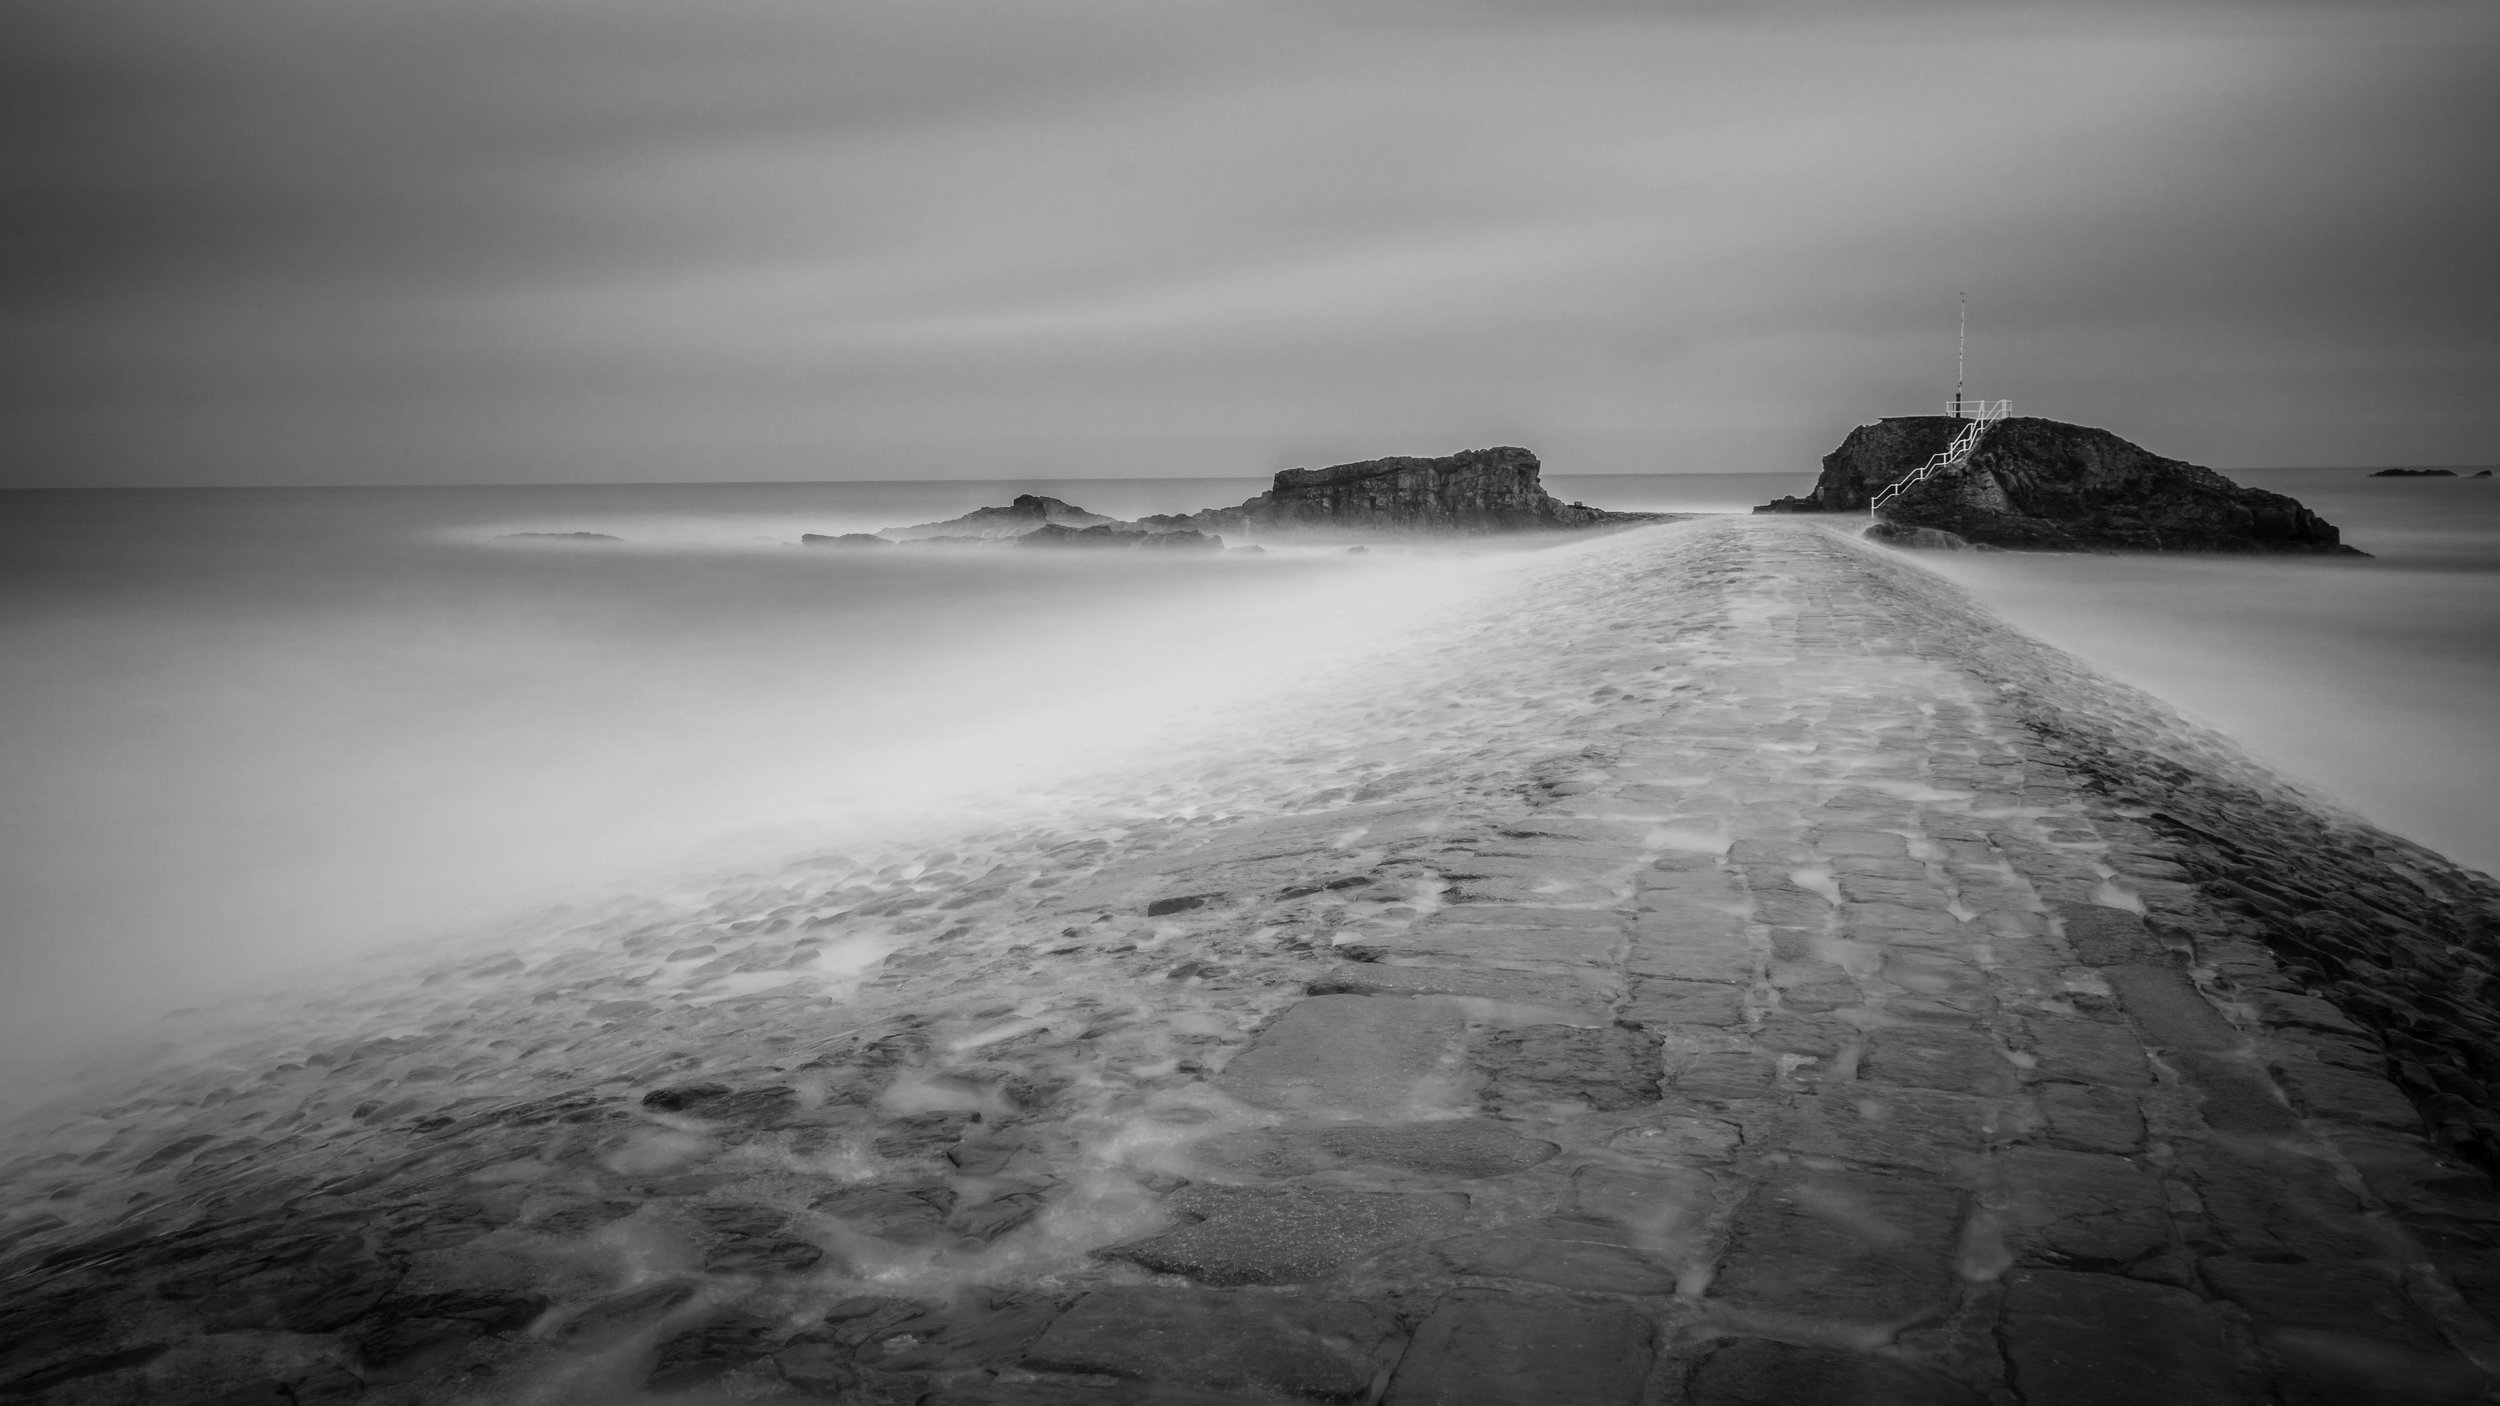 Long Exposure - Long exposure photography is a massive love of mine, i am a sucker for that ethereal look. There is a shot of Bude breakwater at high tide, with the water draping over the breakwater. I finally got the opportunity to take this shot when i was out planning to shoot a sunrise at compass point. It just goes to show always be prepared for the unexpected.